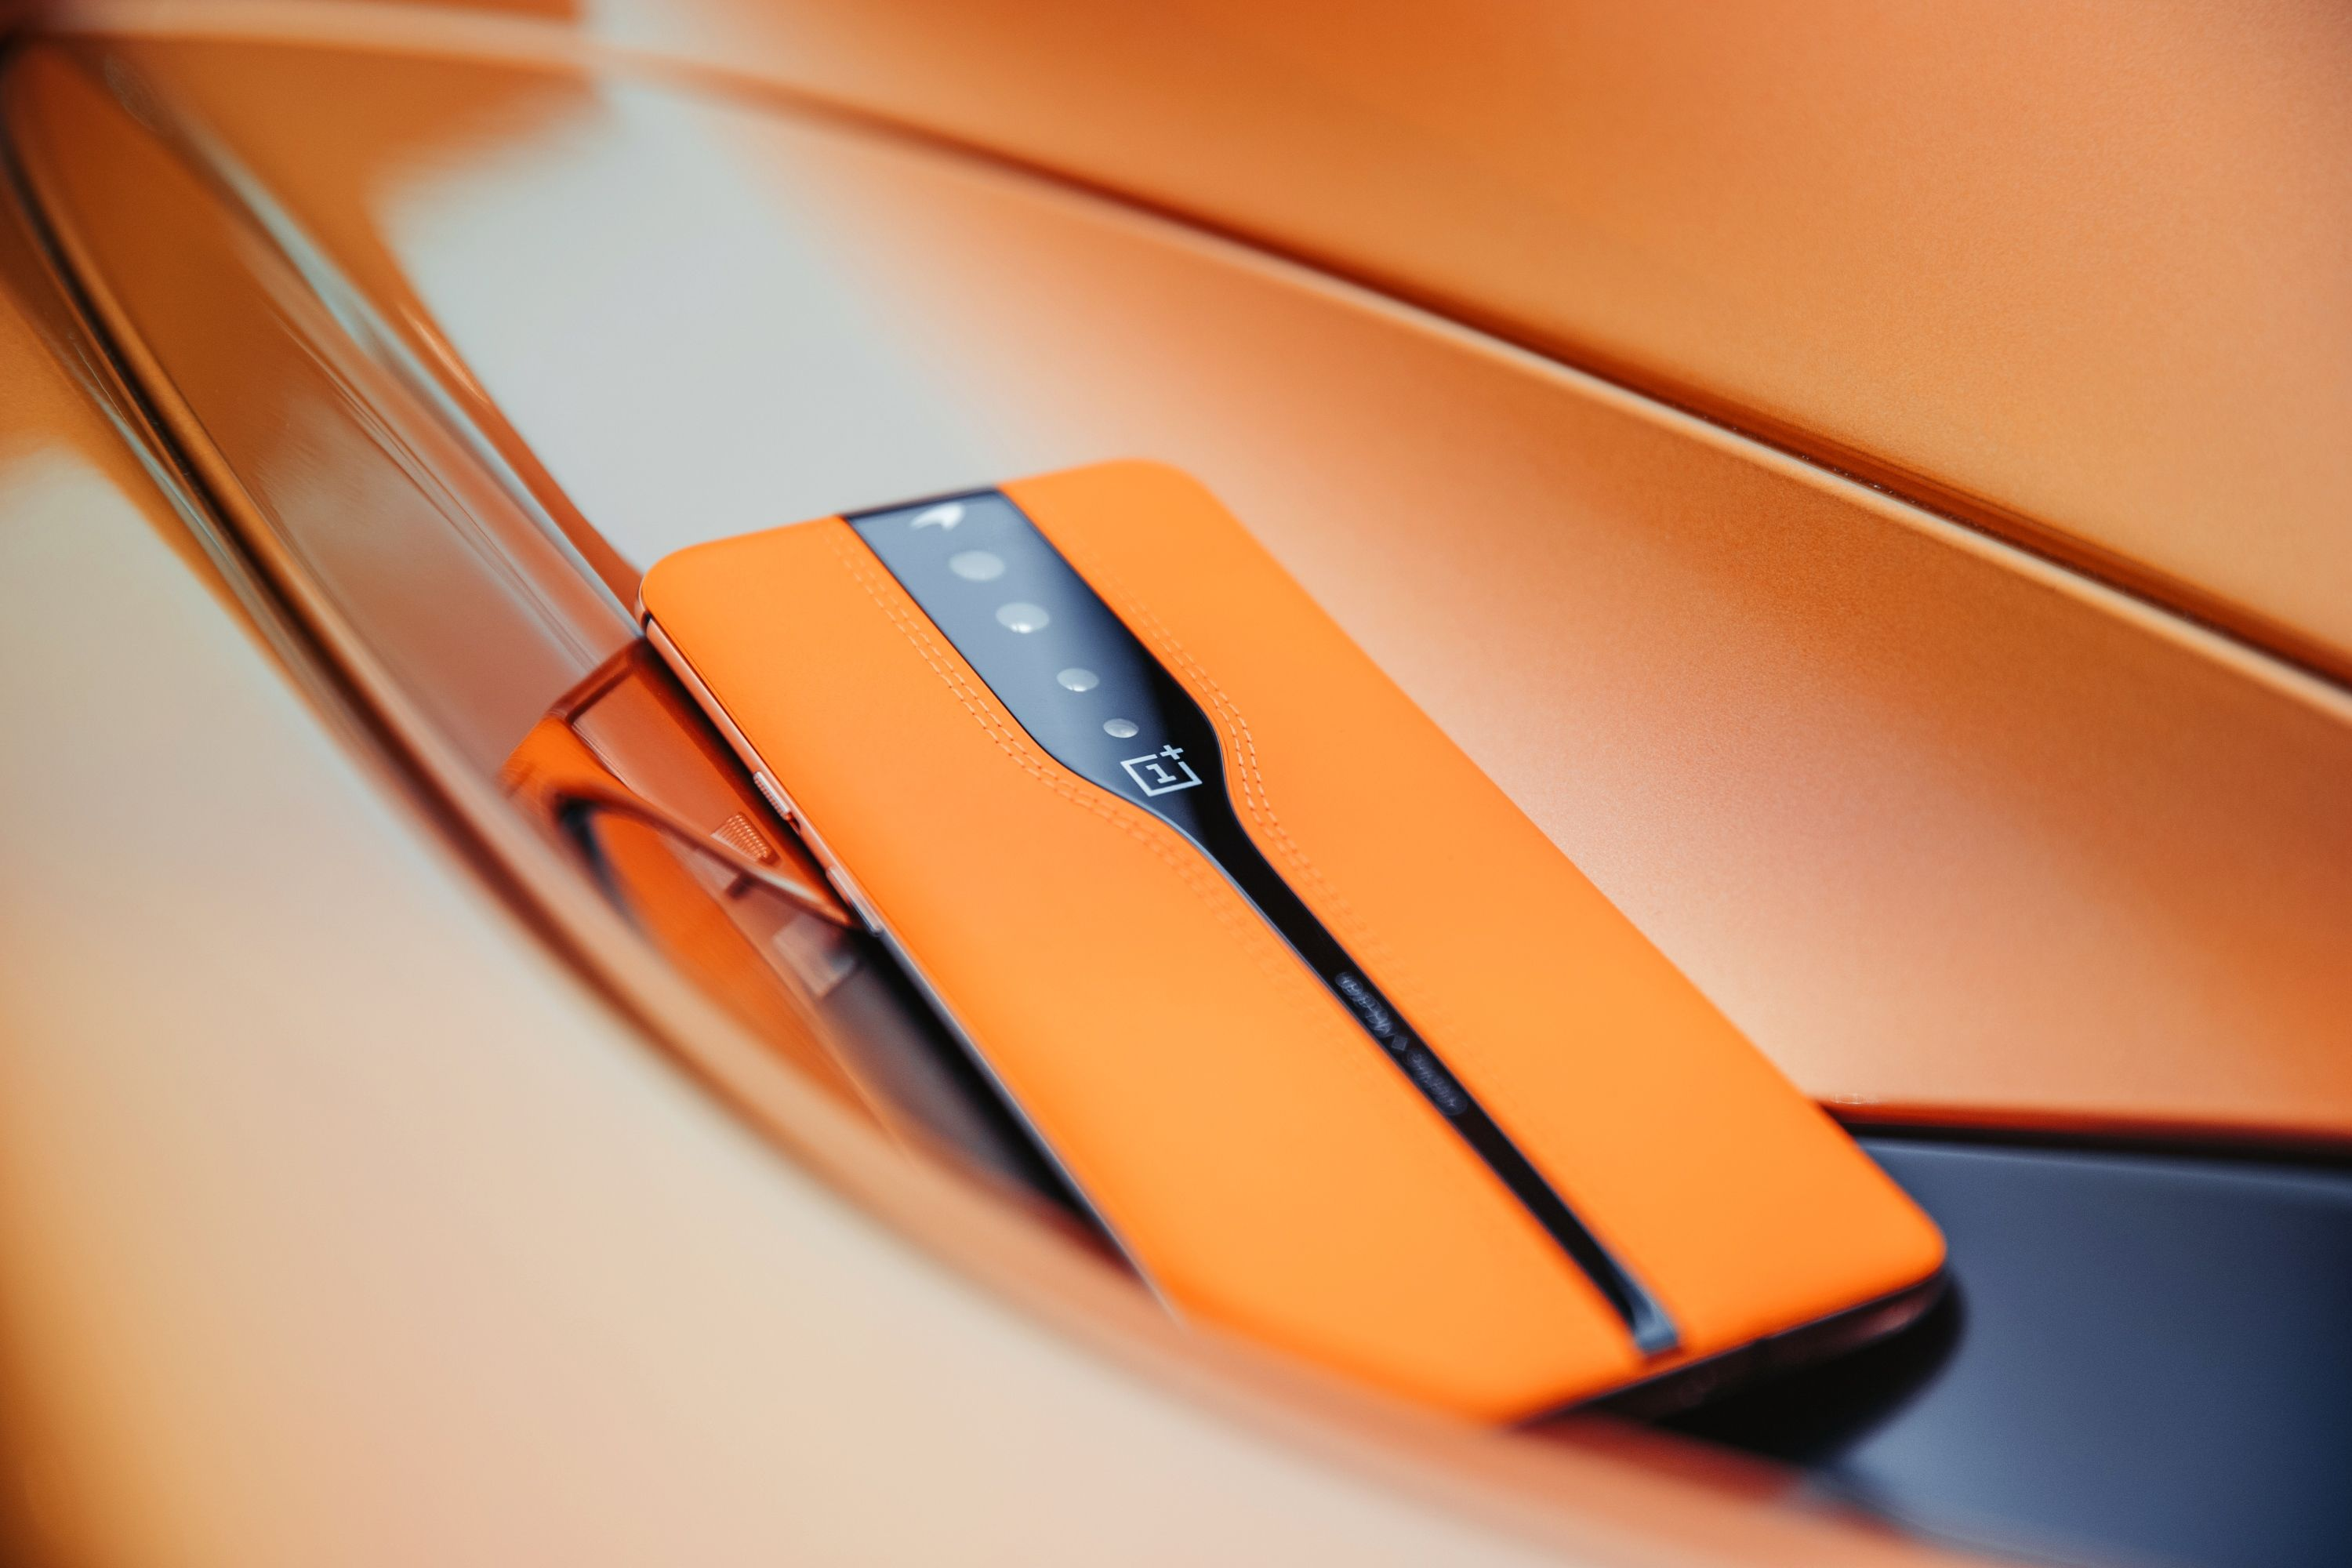 OnePlus Uses Technology from McLaren to Hide Smartphone Cameras When not in Use